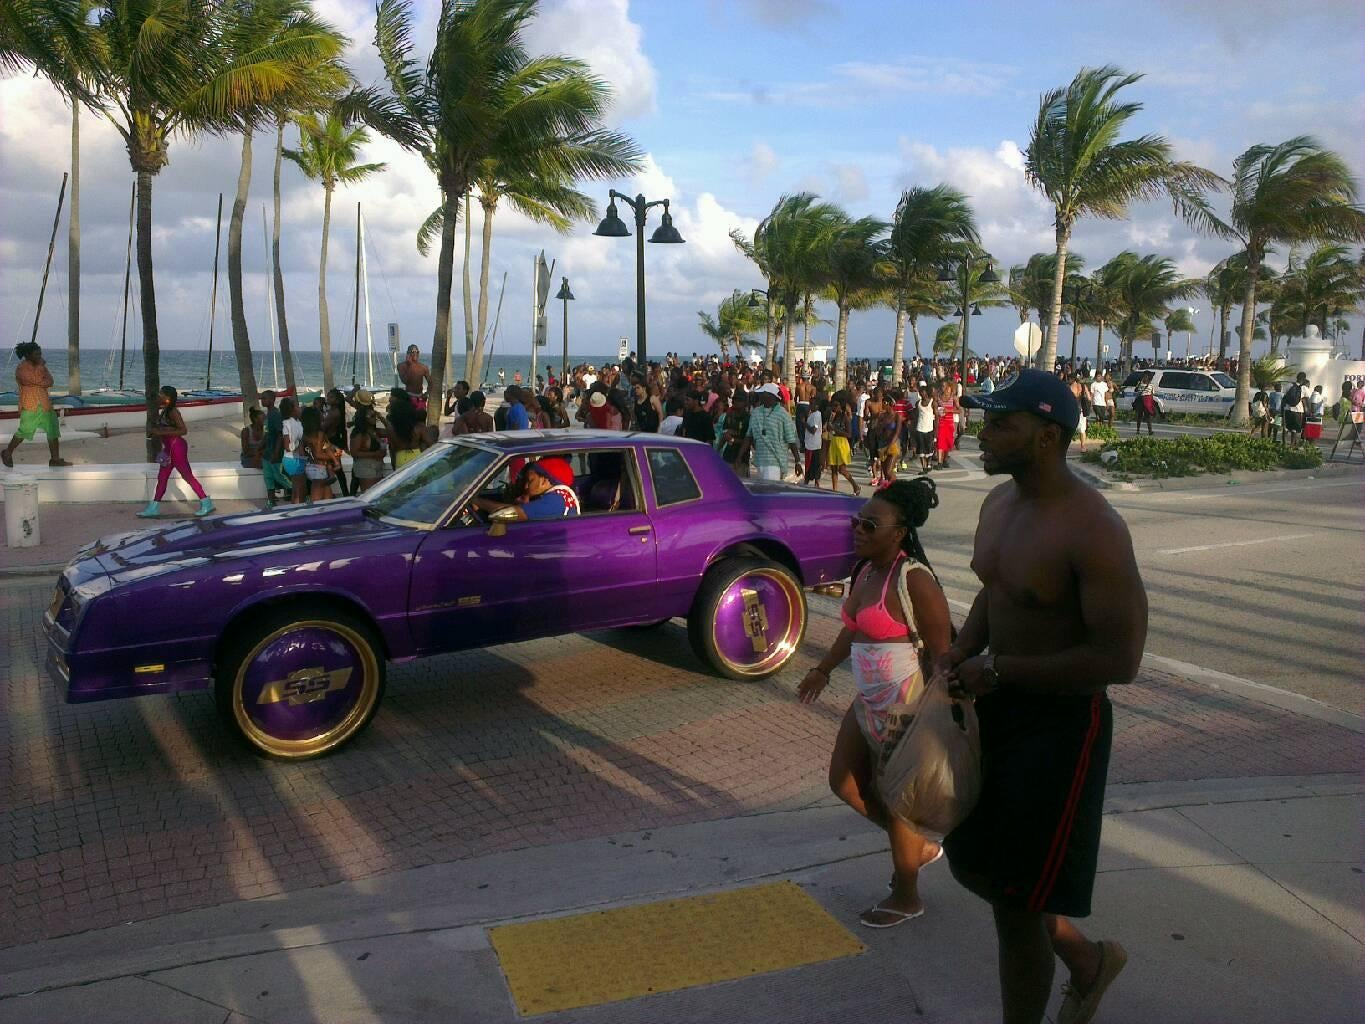 Carrera de coches en South Beach